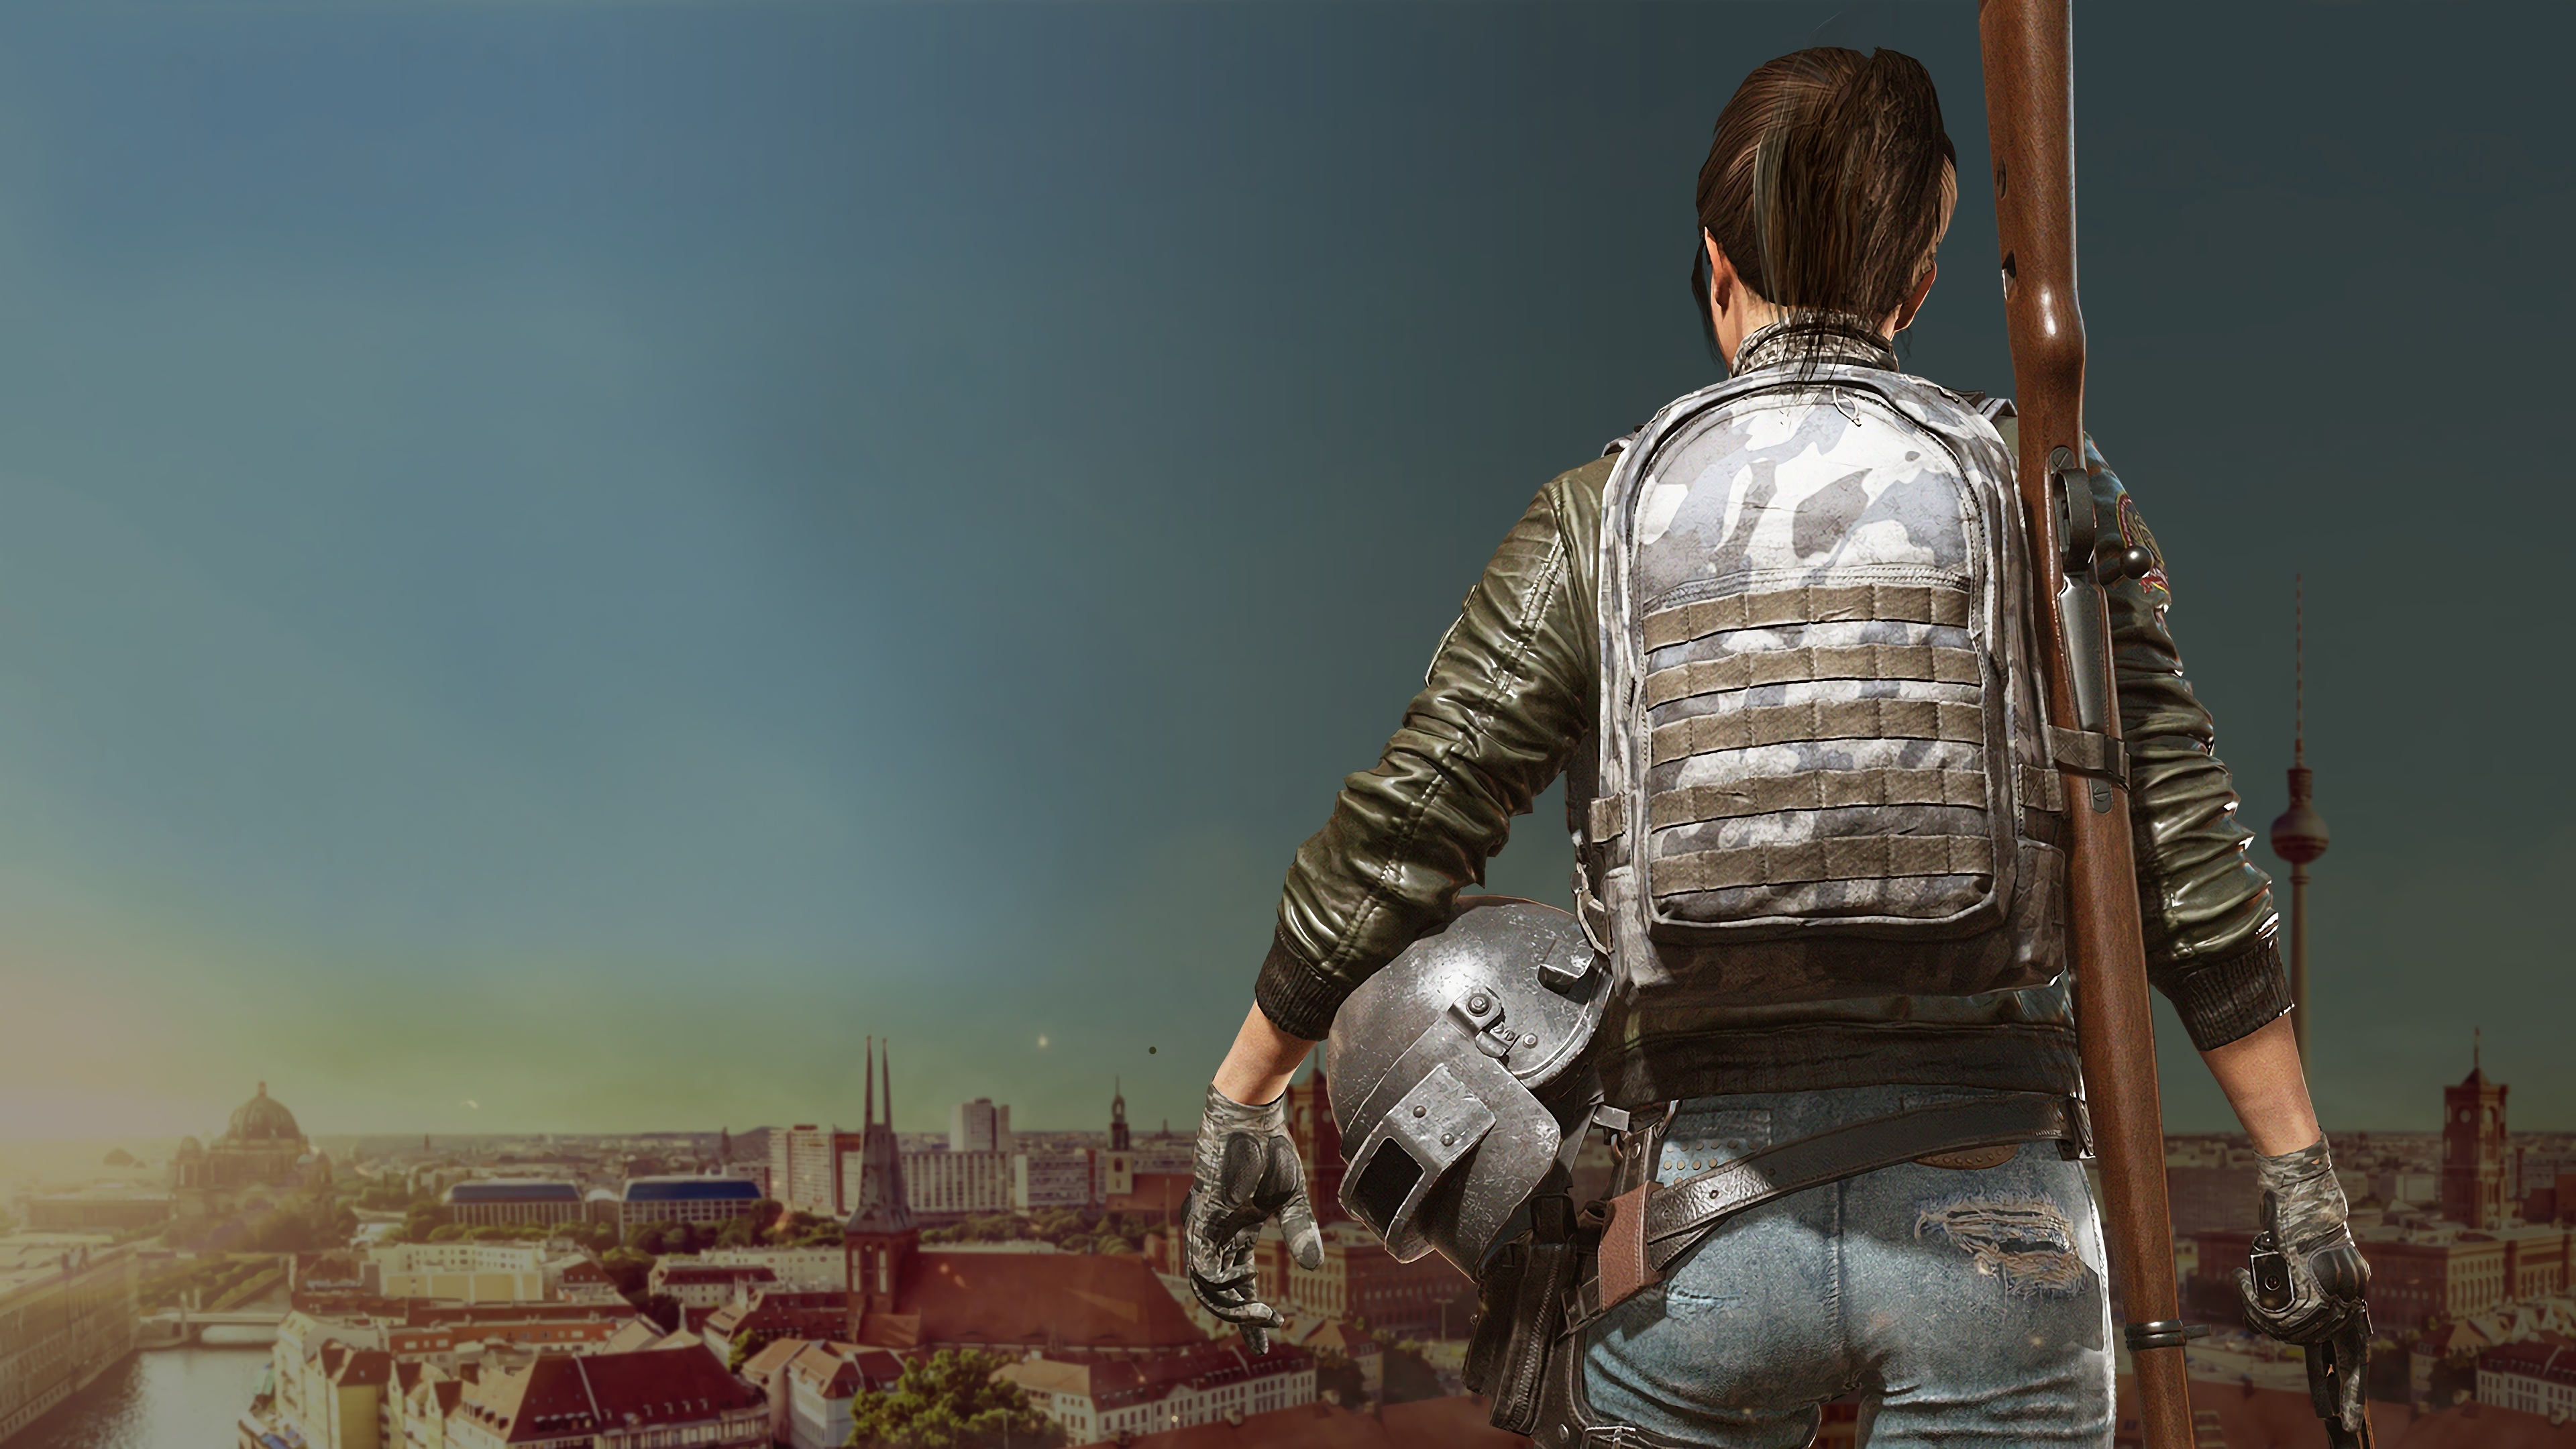 Gambar Pubg Hd Wallpaper: Game Girl Pubg 4k, HD Games, 4k Wallpapers, Images